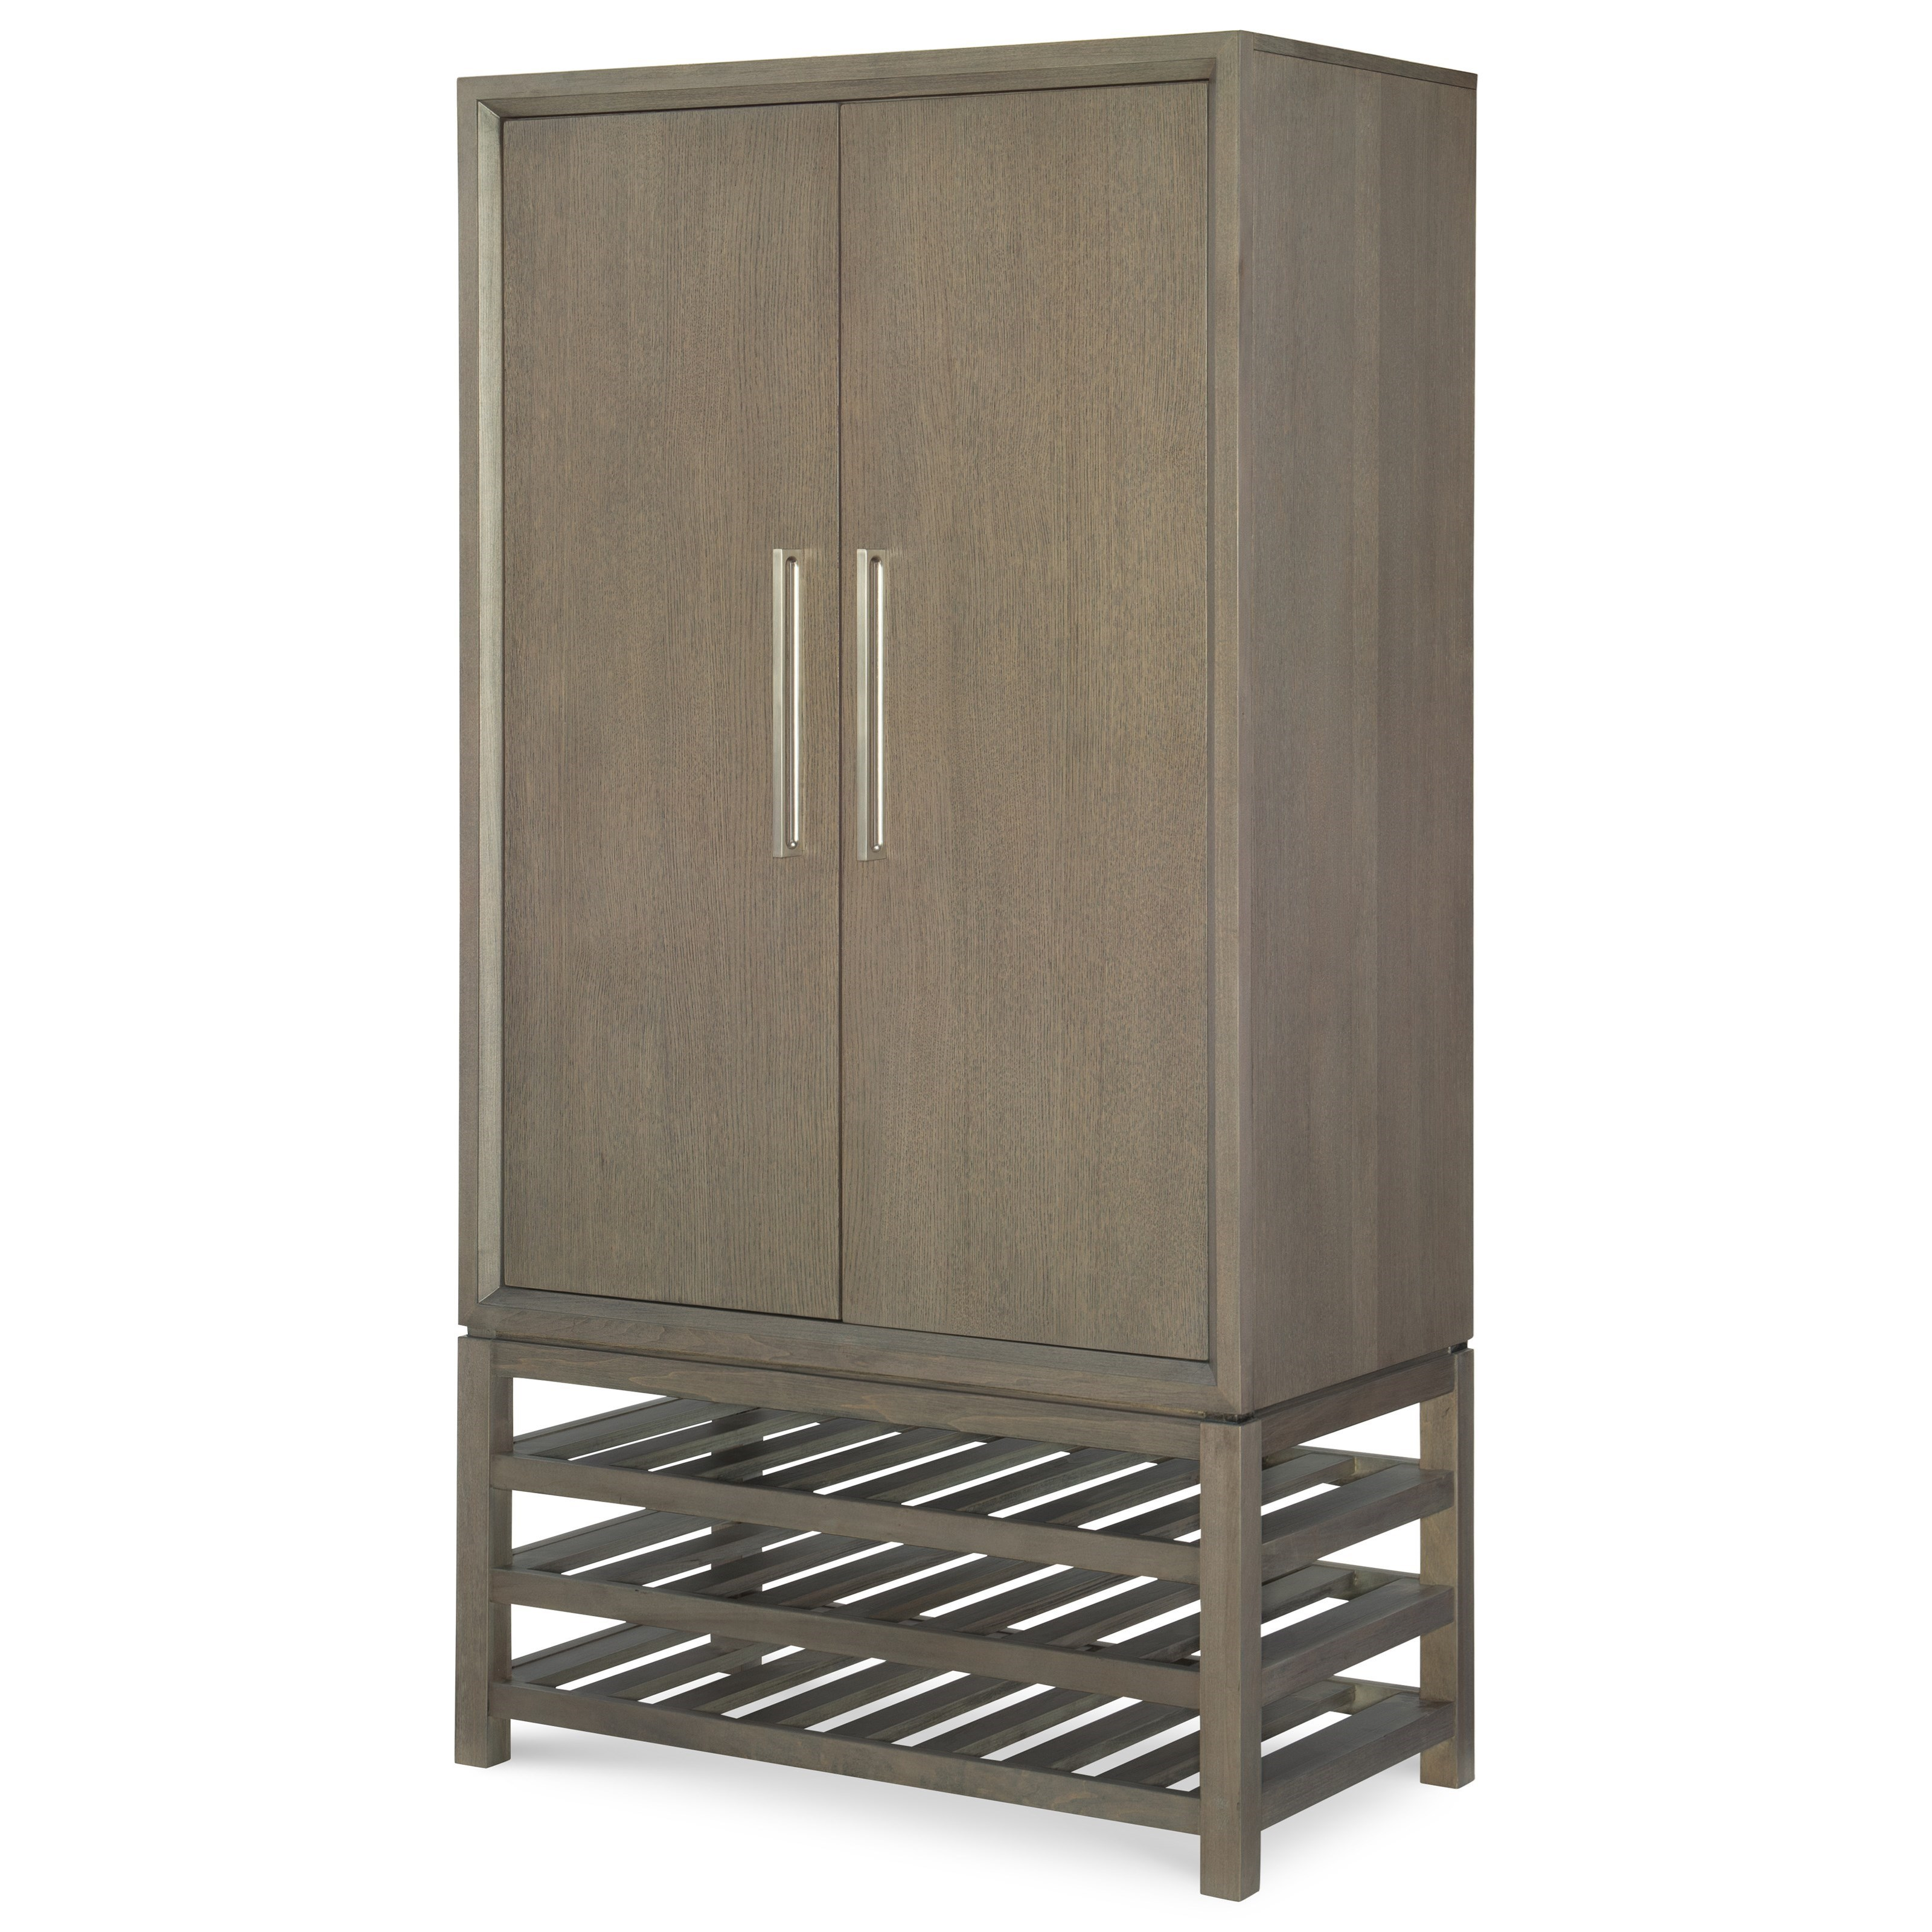 Rachael Ray Home High Line Bar Cabinet - Item Number: 6000-155